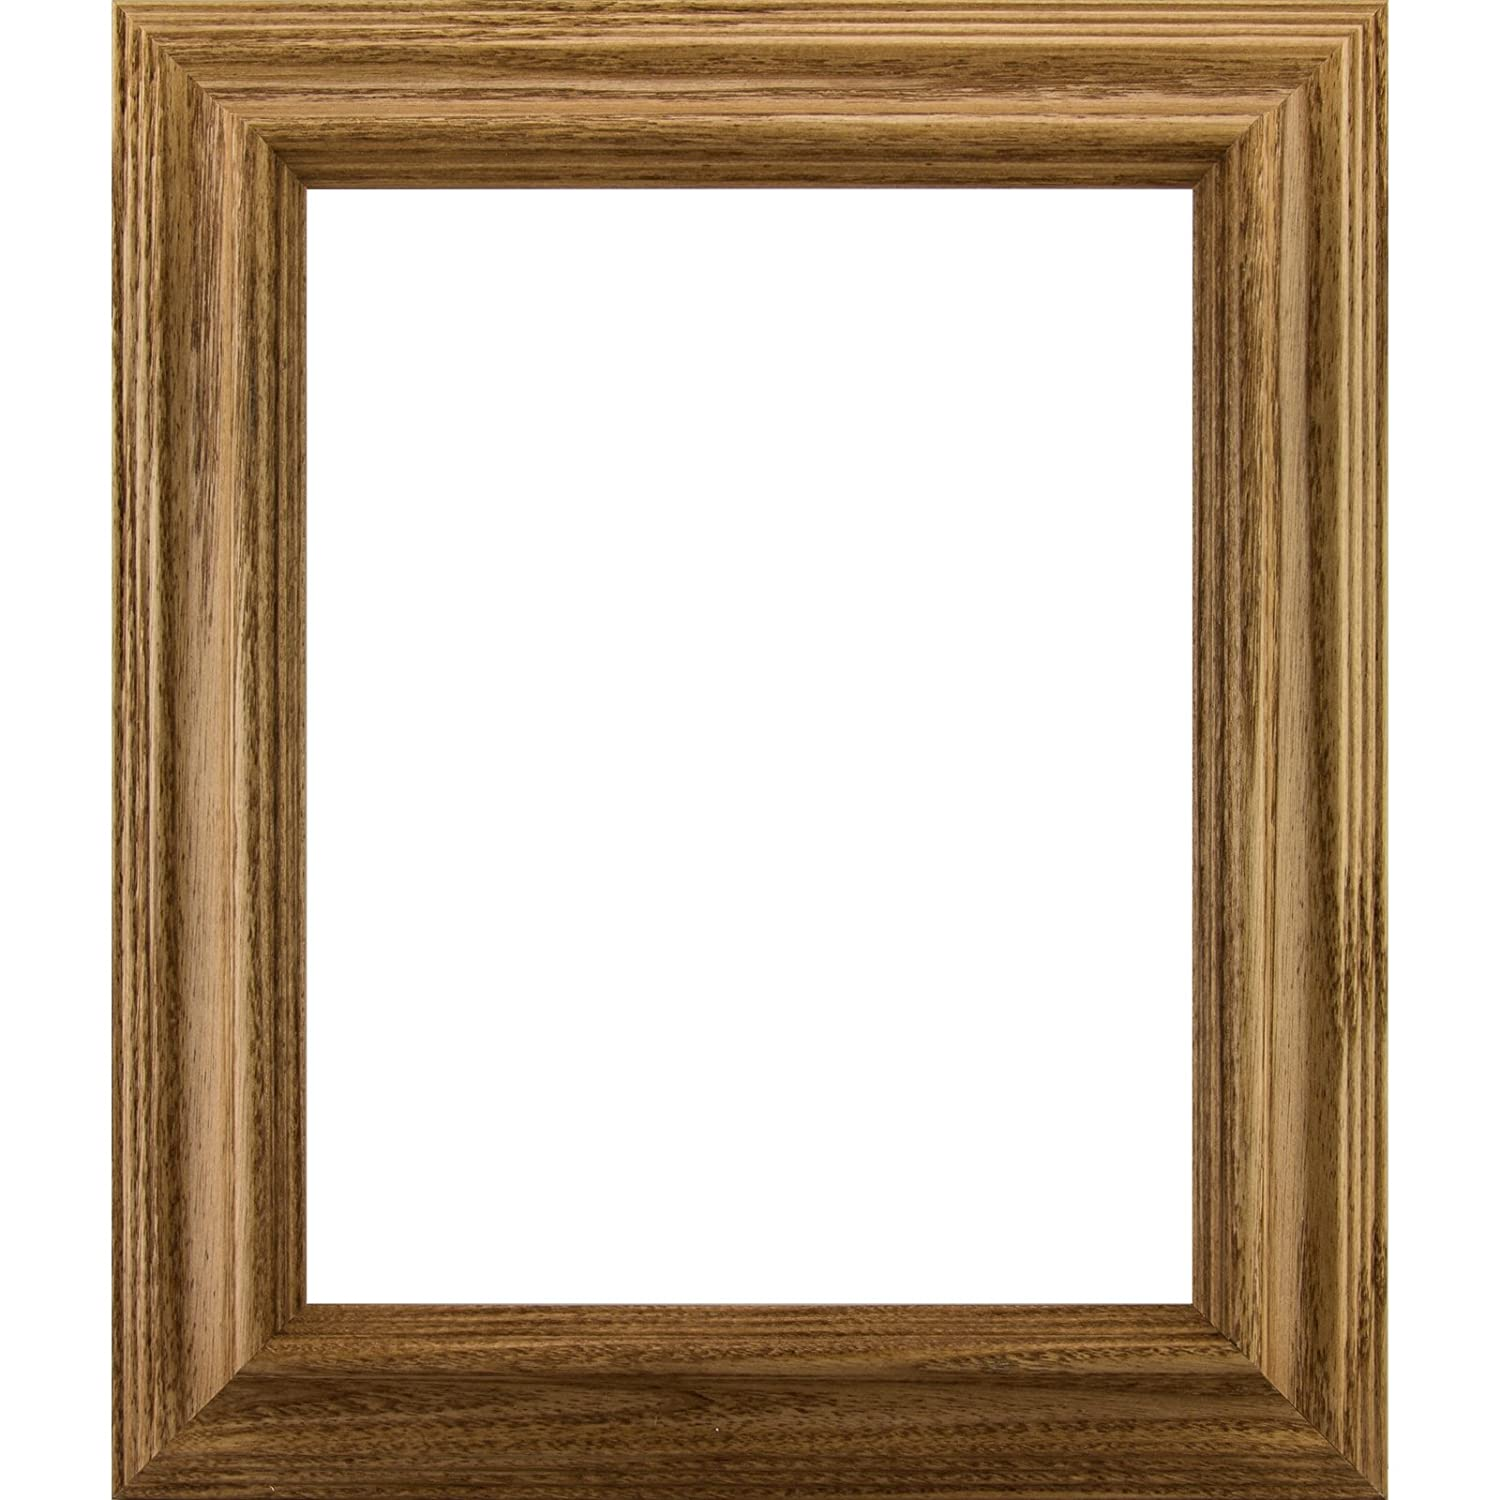 Craig Frames 77332900 8 by 12-Inch Picture Frame, Wood Grain Finish ...